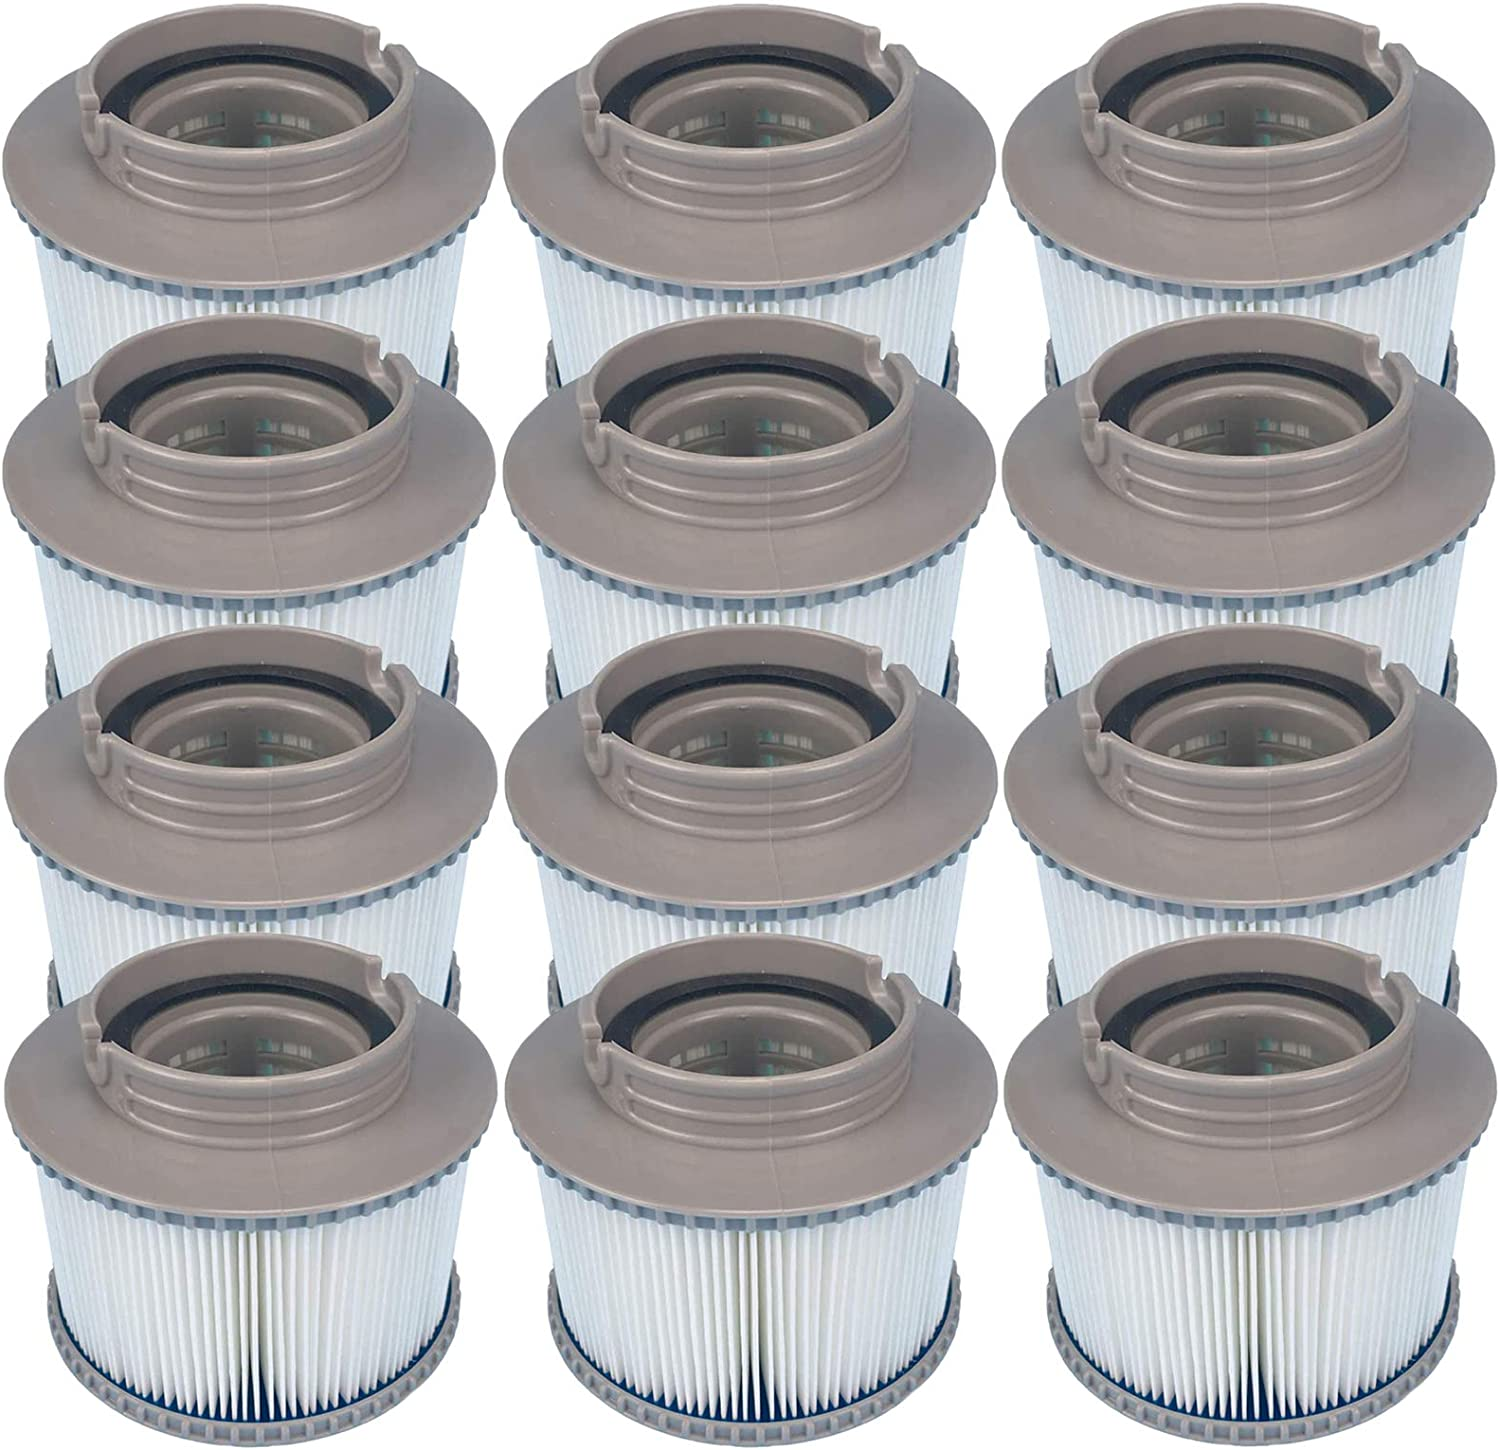 SKTLBB New sales Filter Cartridge for MSpa Replacement Latest item Hot Tub Cart